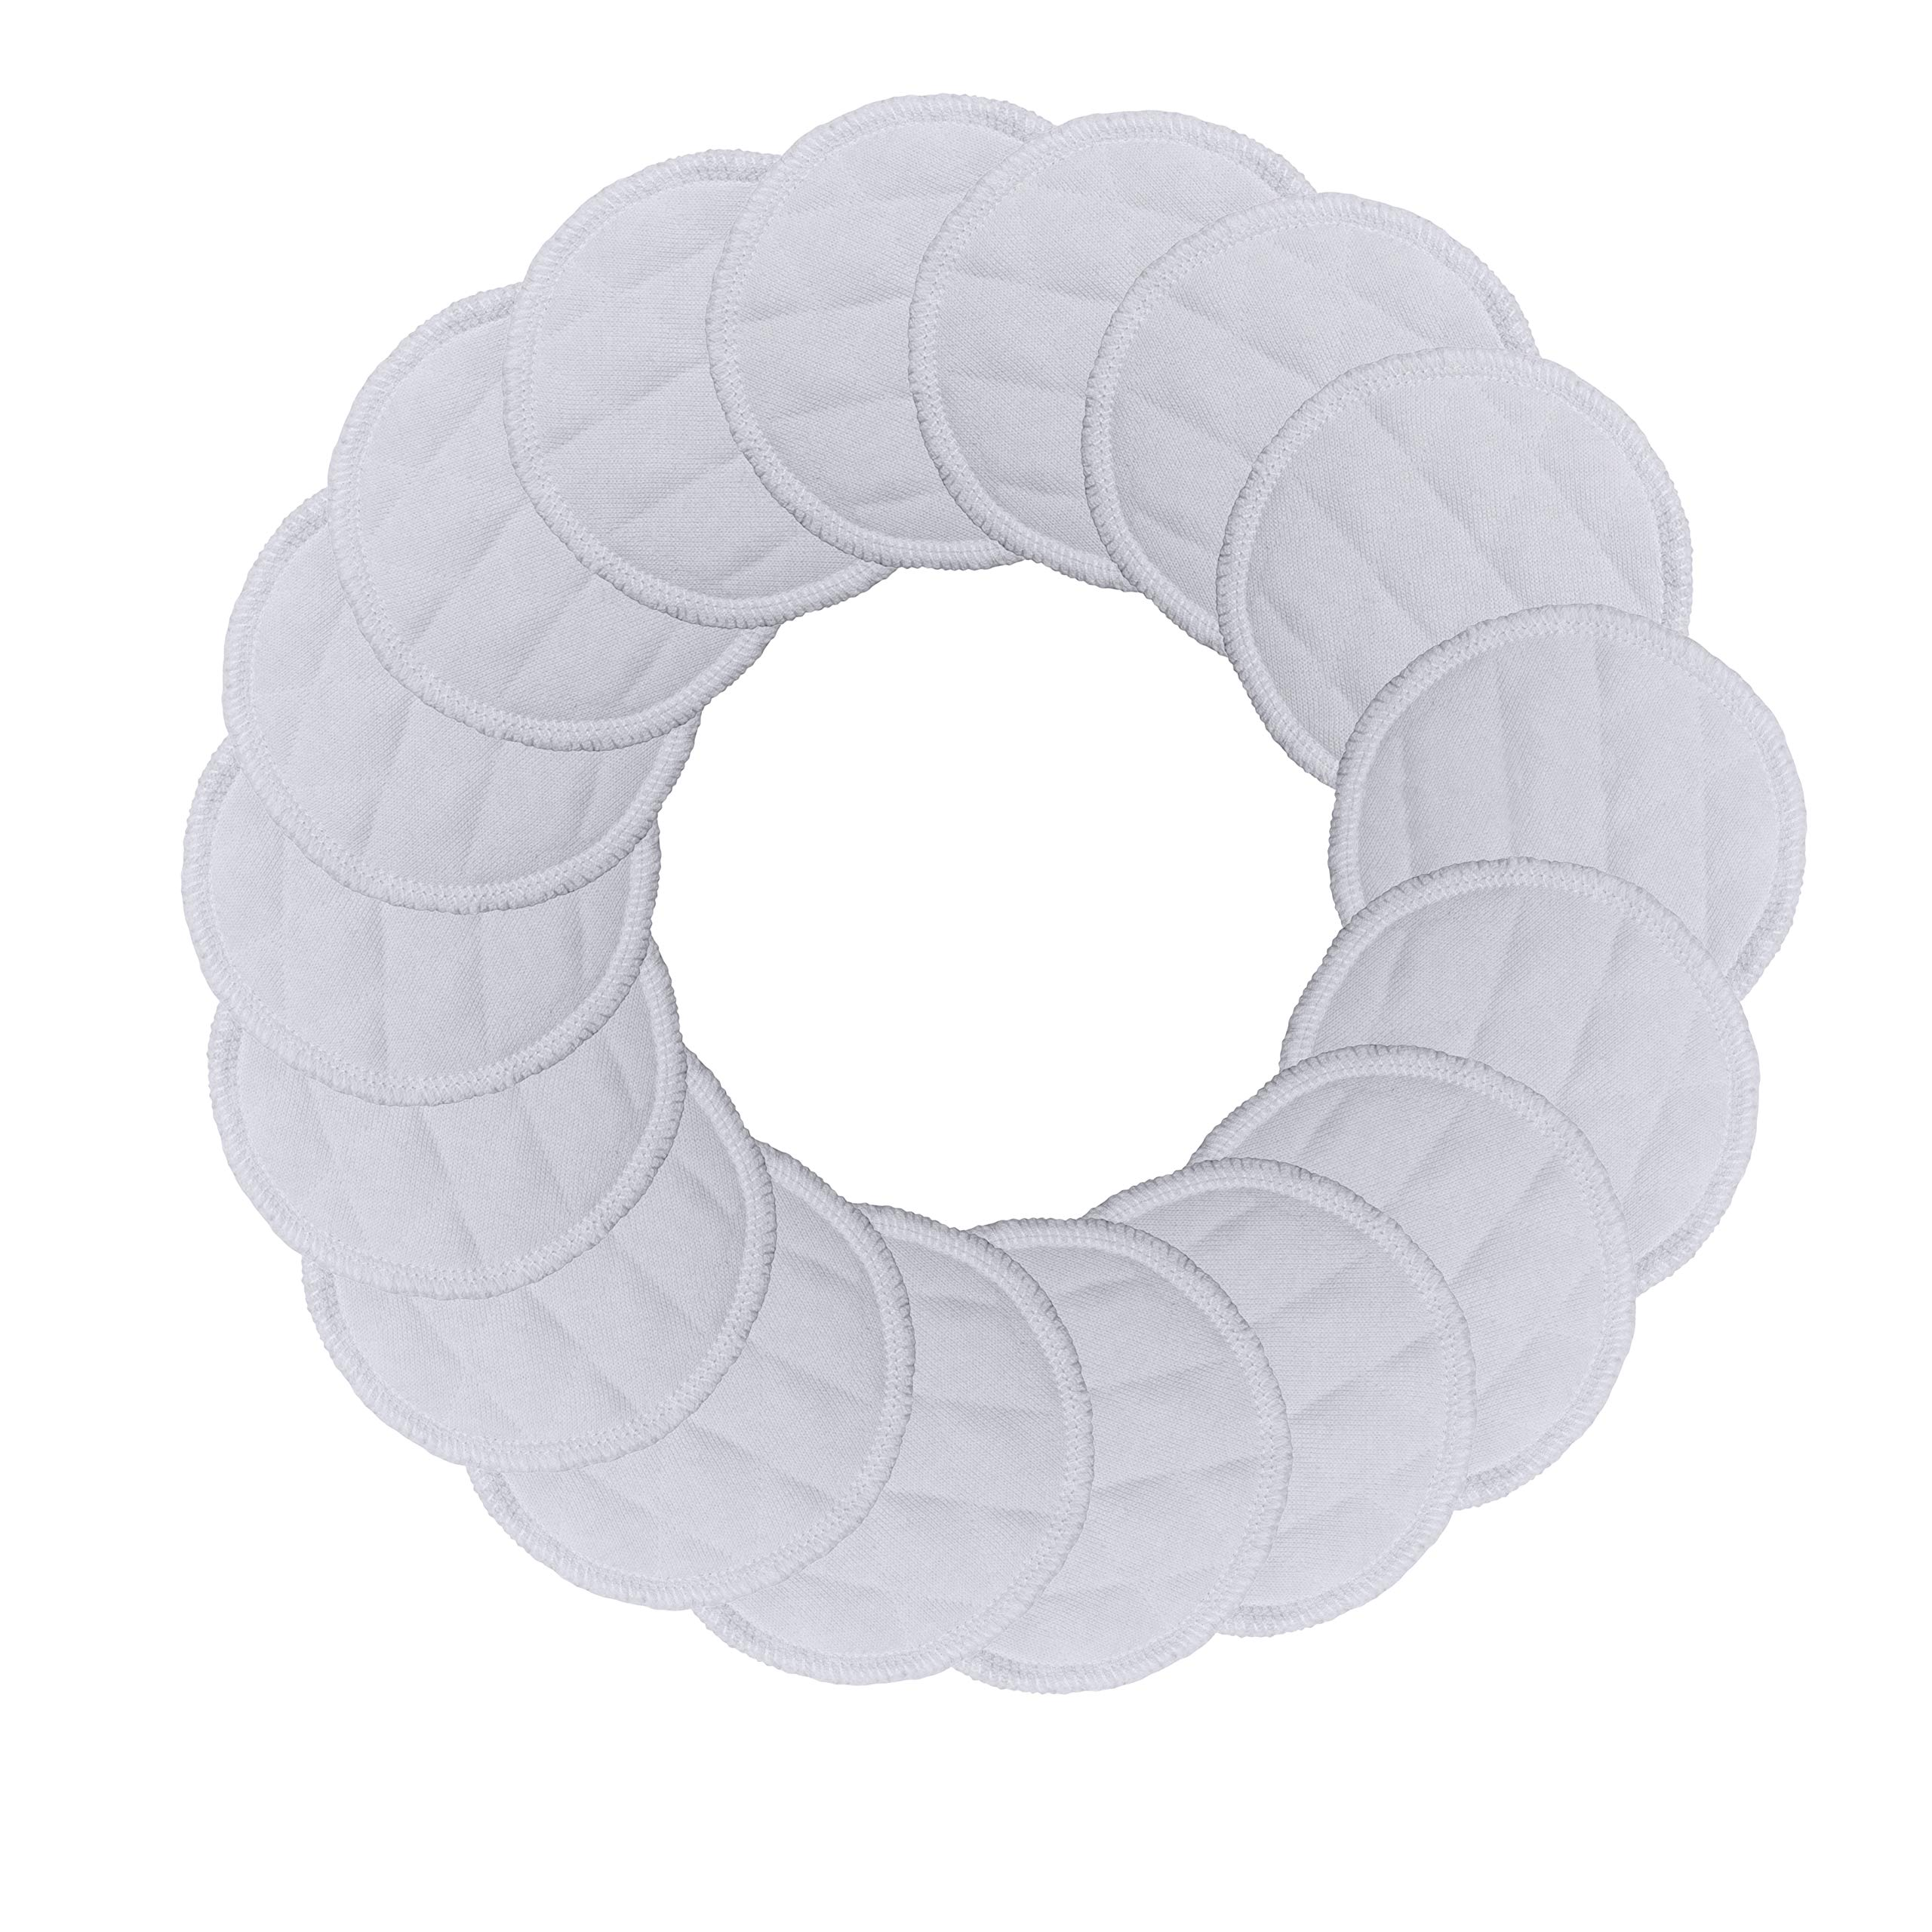 Best Organic Cotton Makeup Remover Pads - 20 Pack - Reusable & All-Natural Fibers, GOTS-Certified Material - Washable, Hypoallergenic Face Wipes - Great for Sensitive Skin, Nature-Friendly Alternative